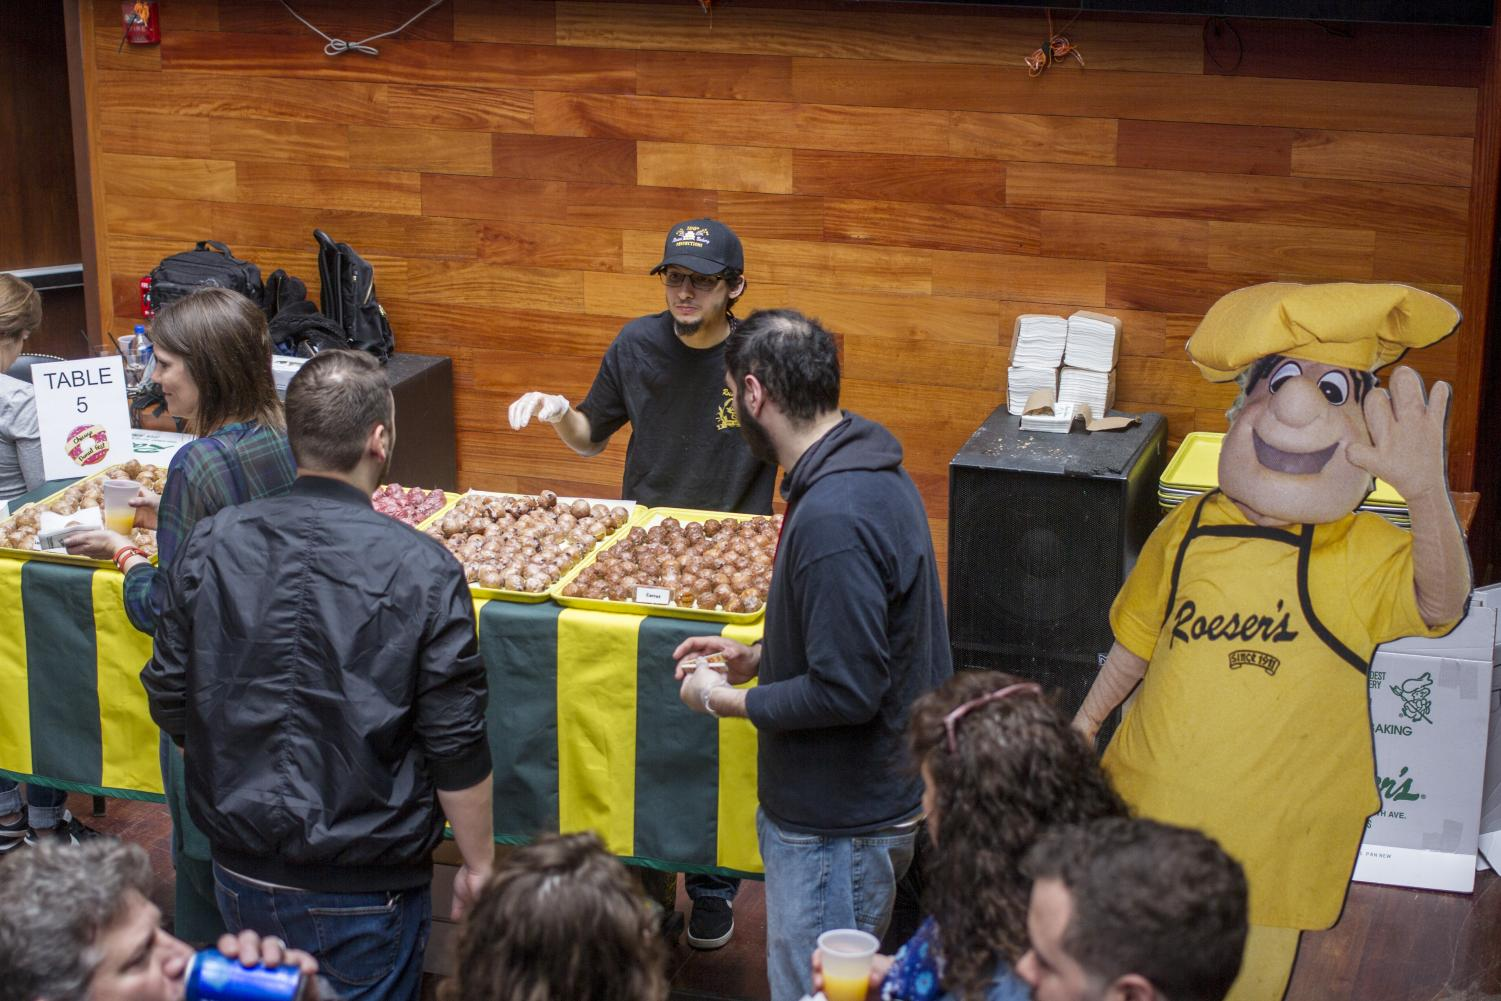 Donut+Fest+participants+spent+their+day+looking+for+more+donuts+to+taste.+